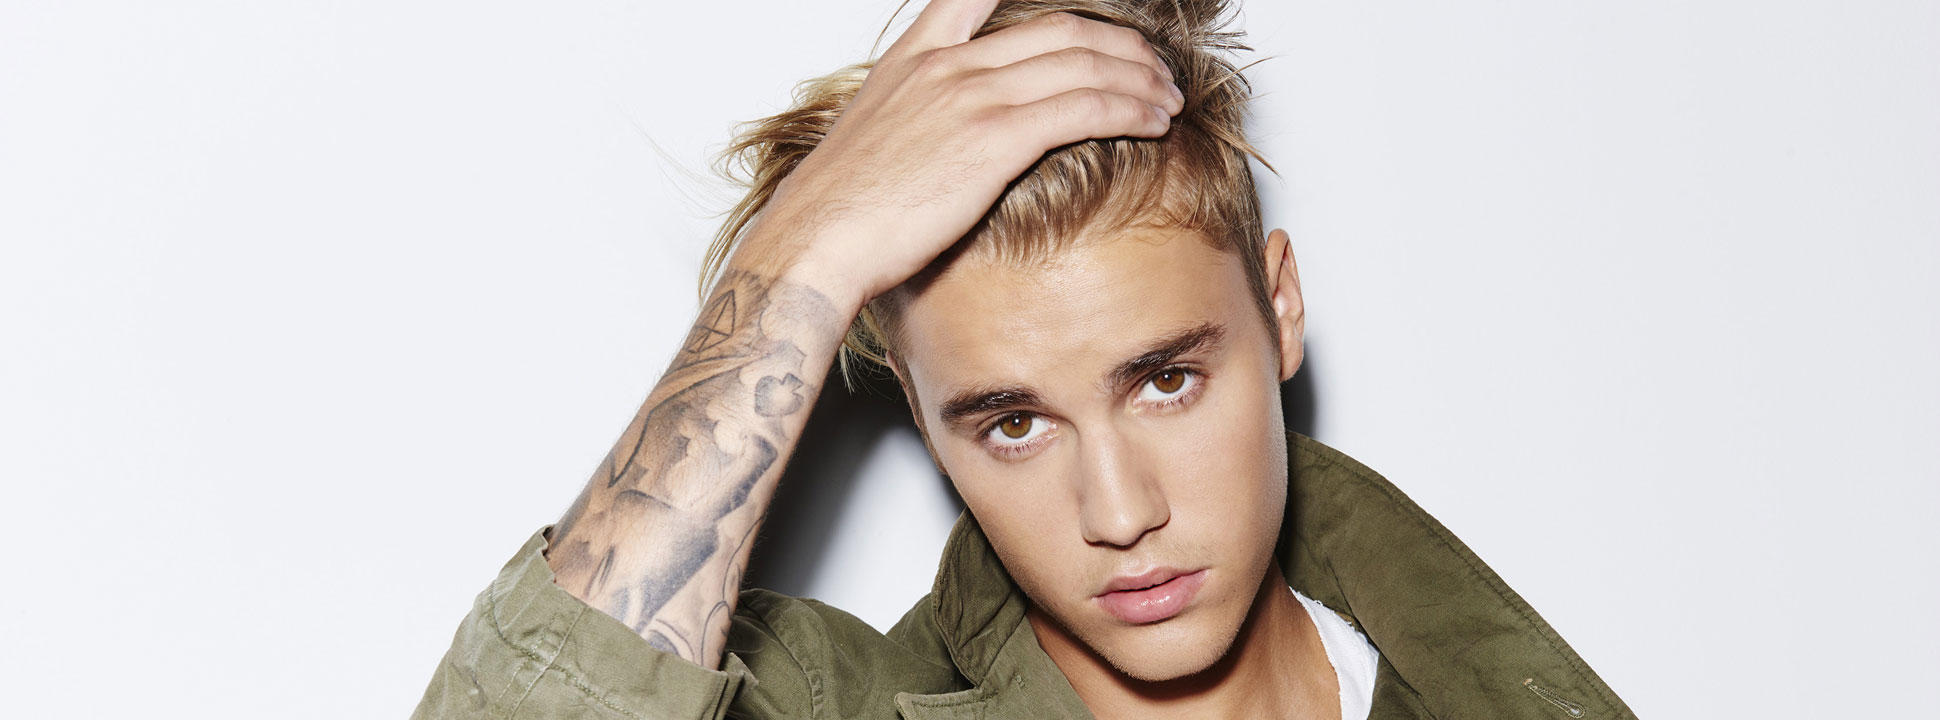 Justin Bieber won't be coming to Manila for the Purpose Tour anymore